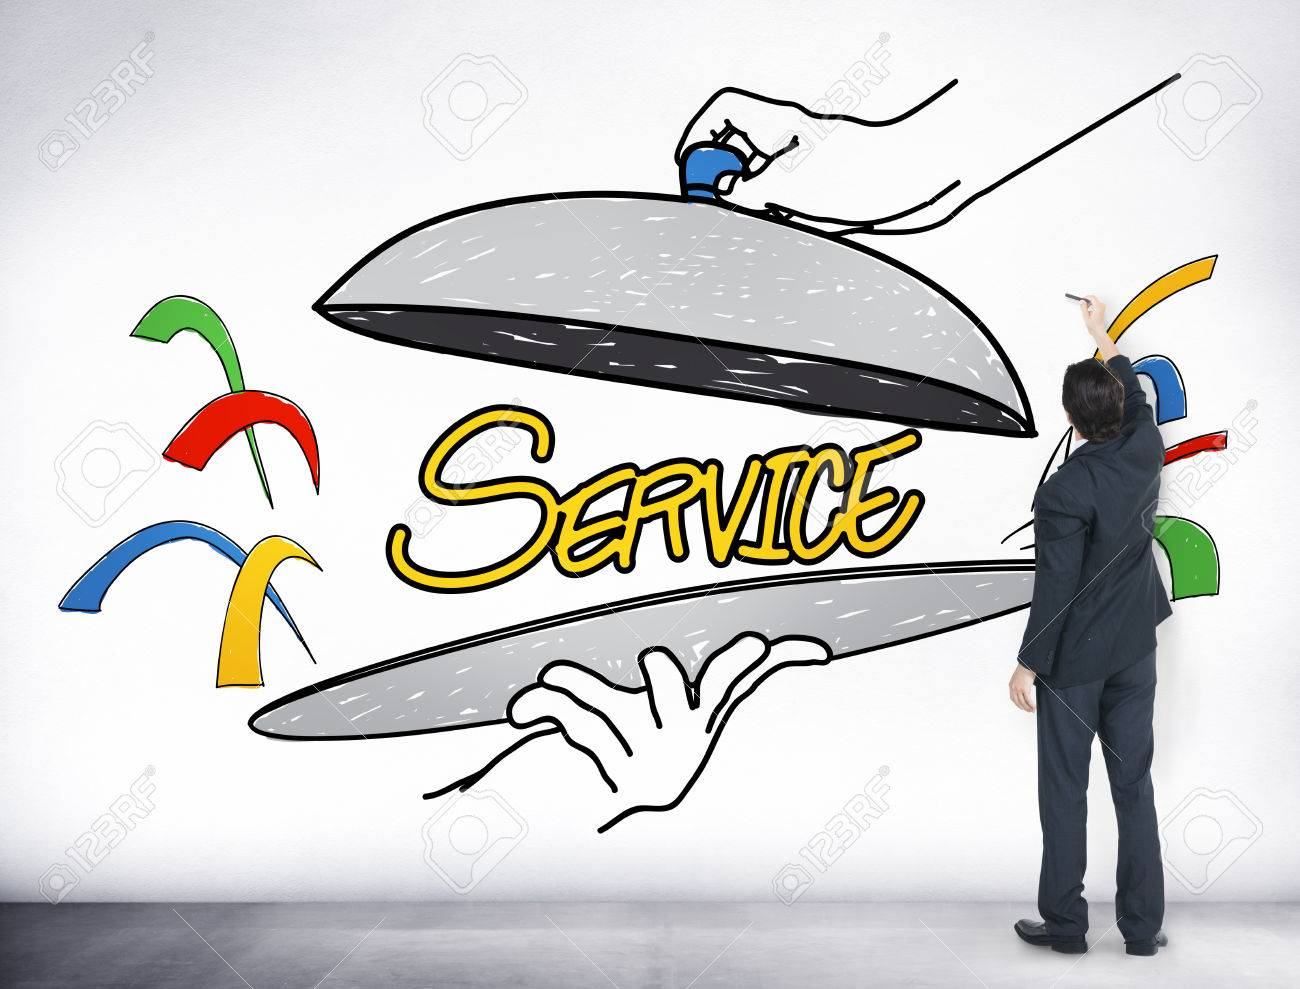 1300x989 Customer Service Quality Platter Sketch Drawing Concept Stock